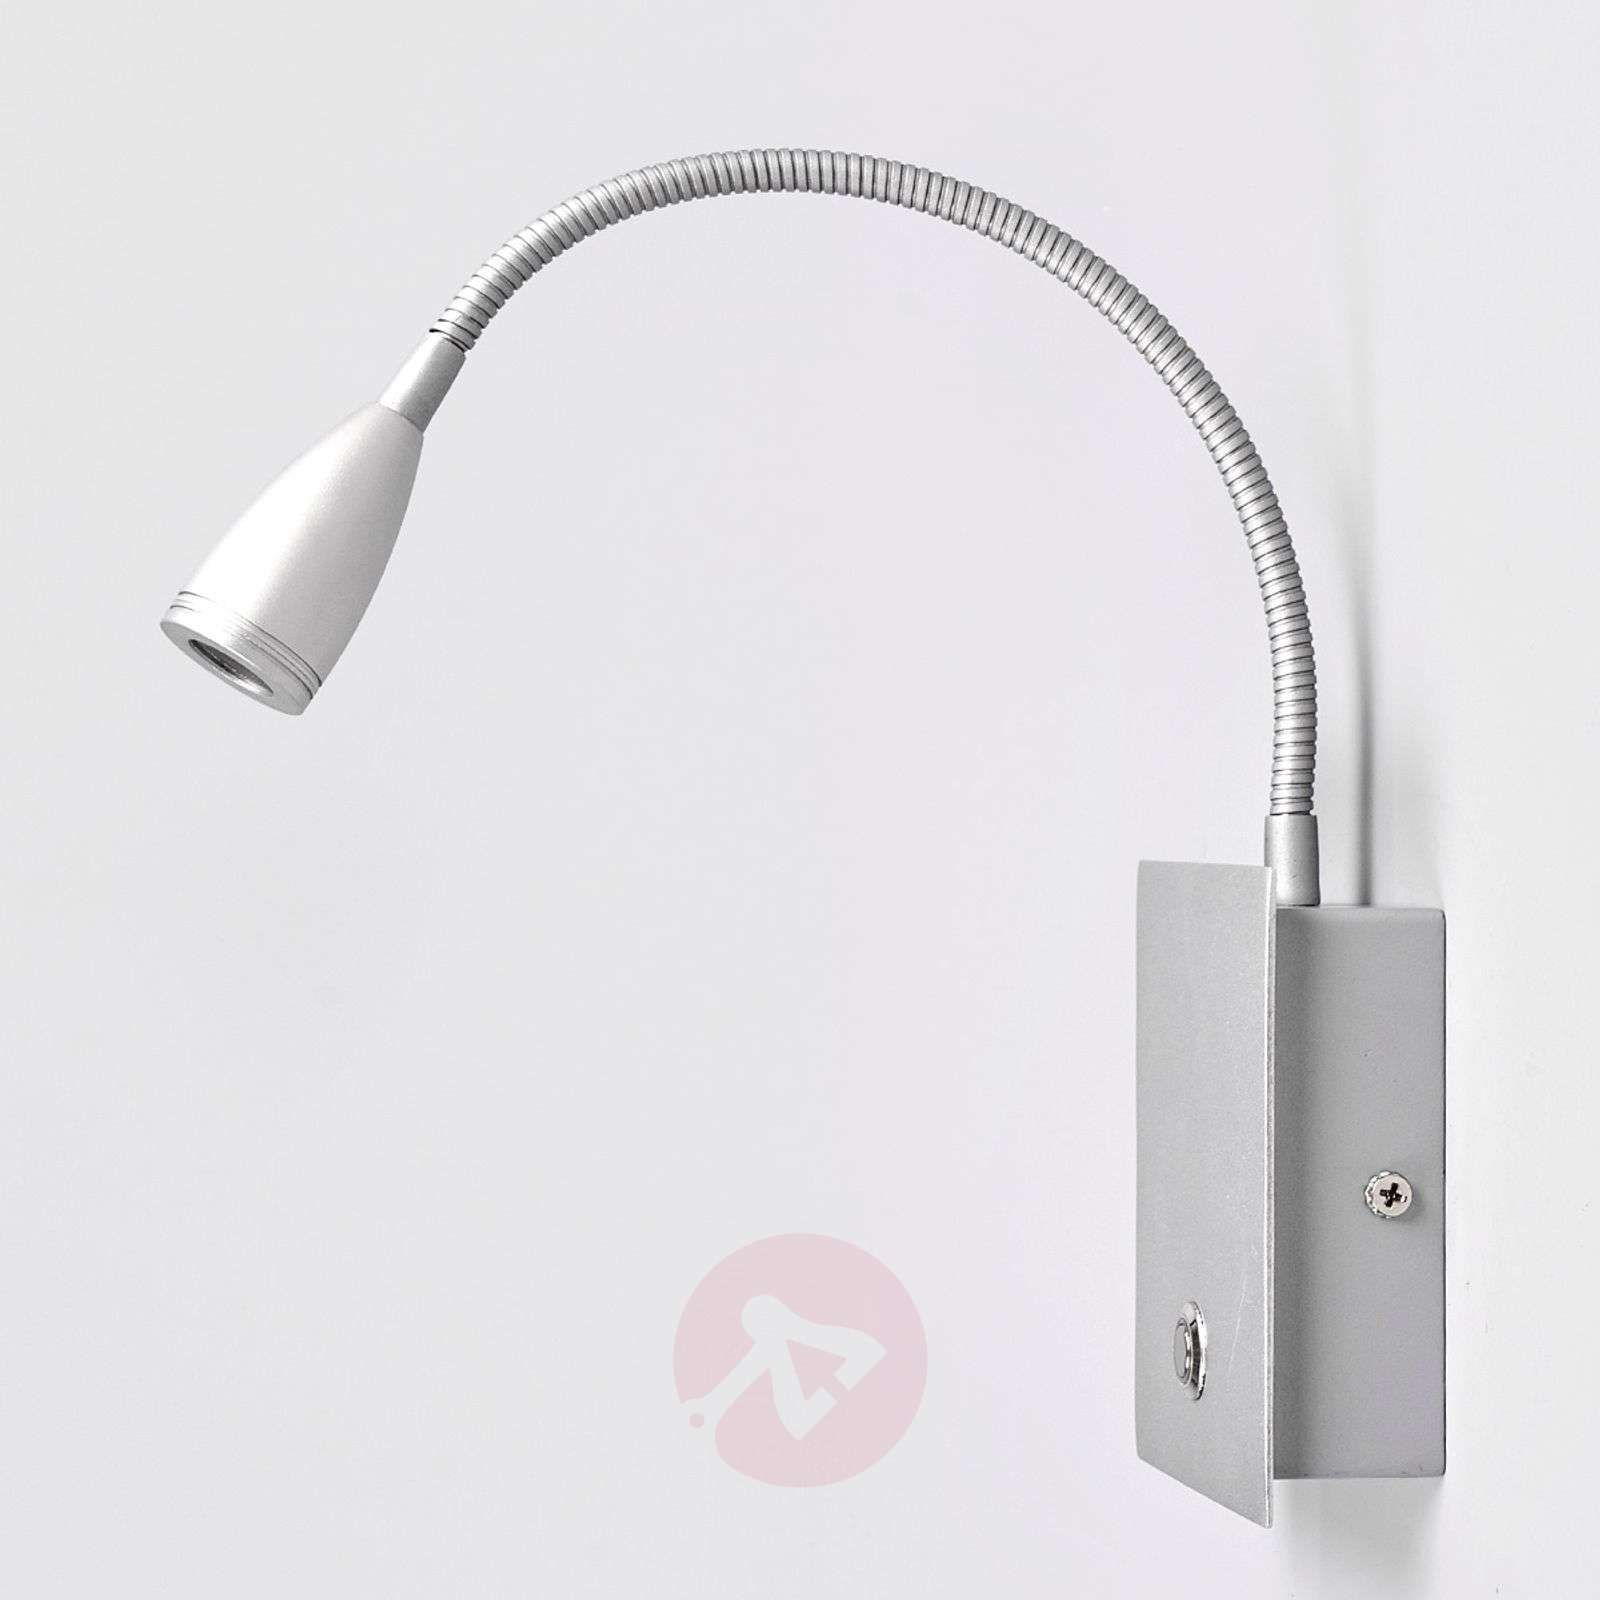 Dimmable LED wall light Torin in silver grey-9976005-01